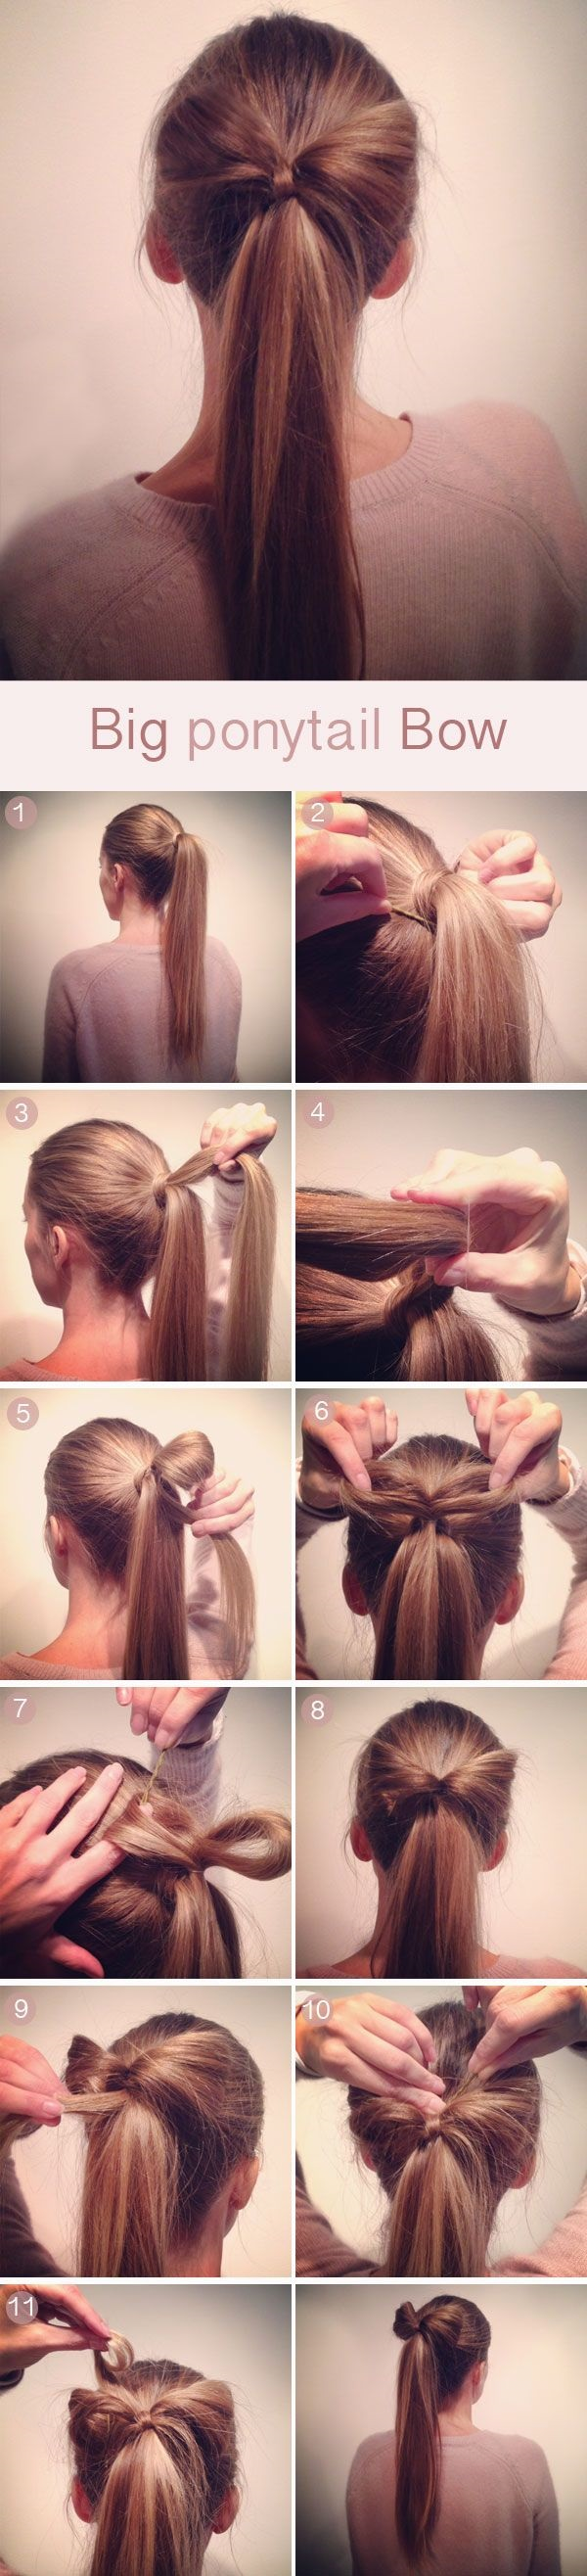 Simple Five Minute Hairstyles (53)